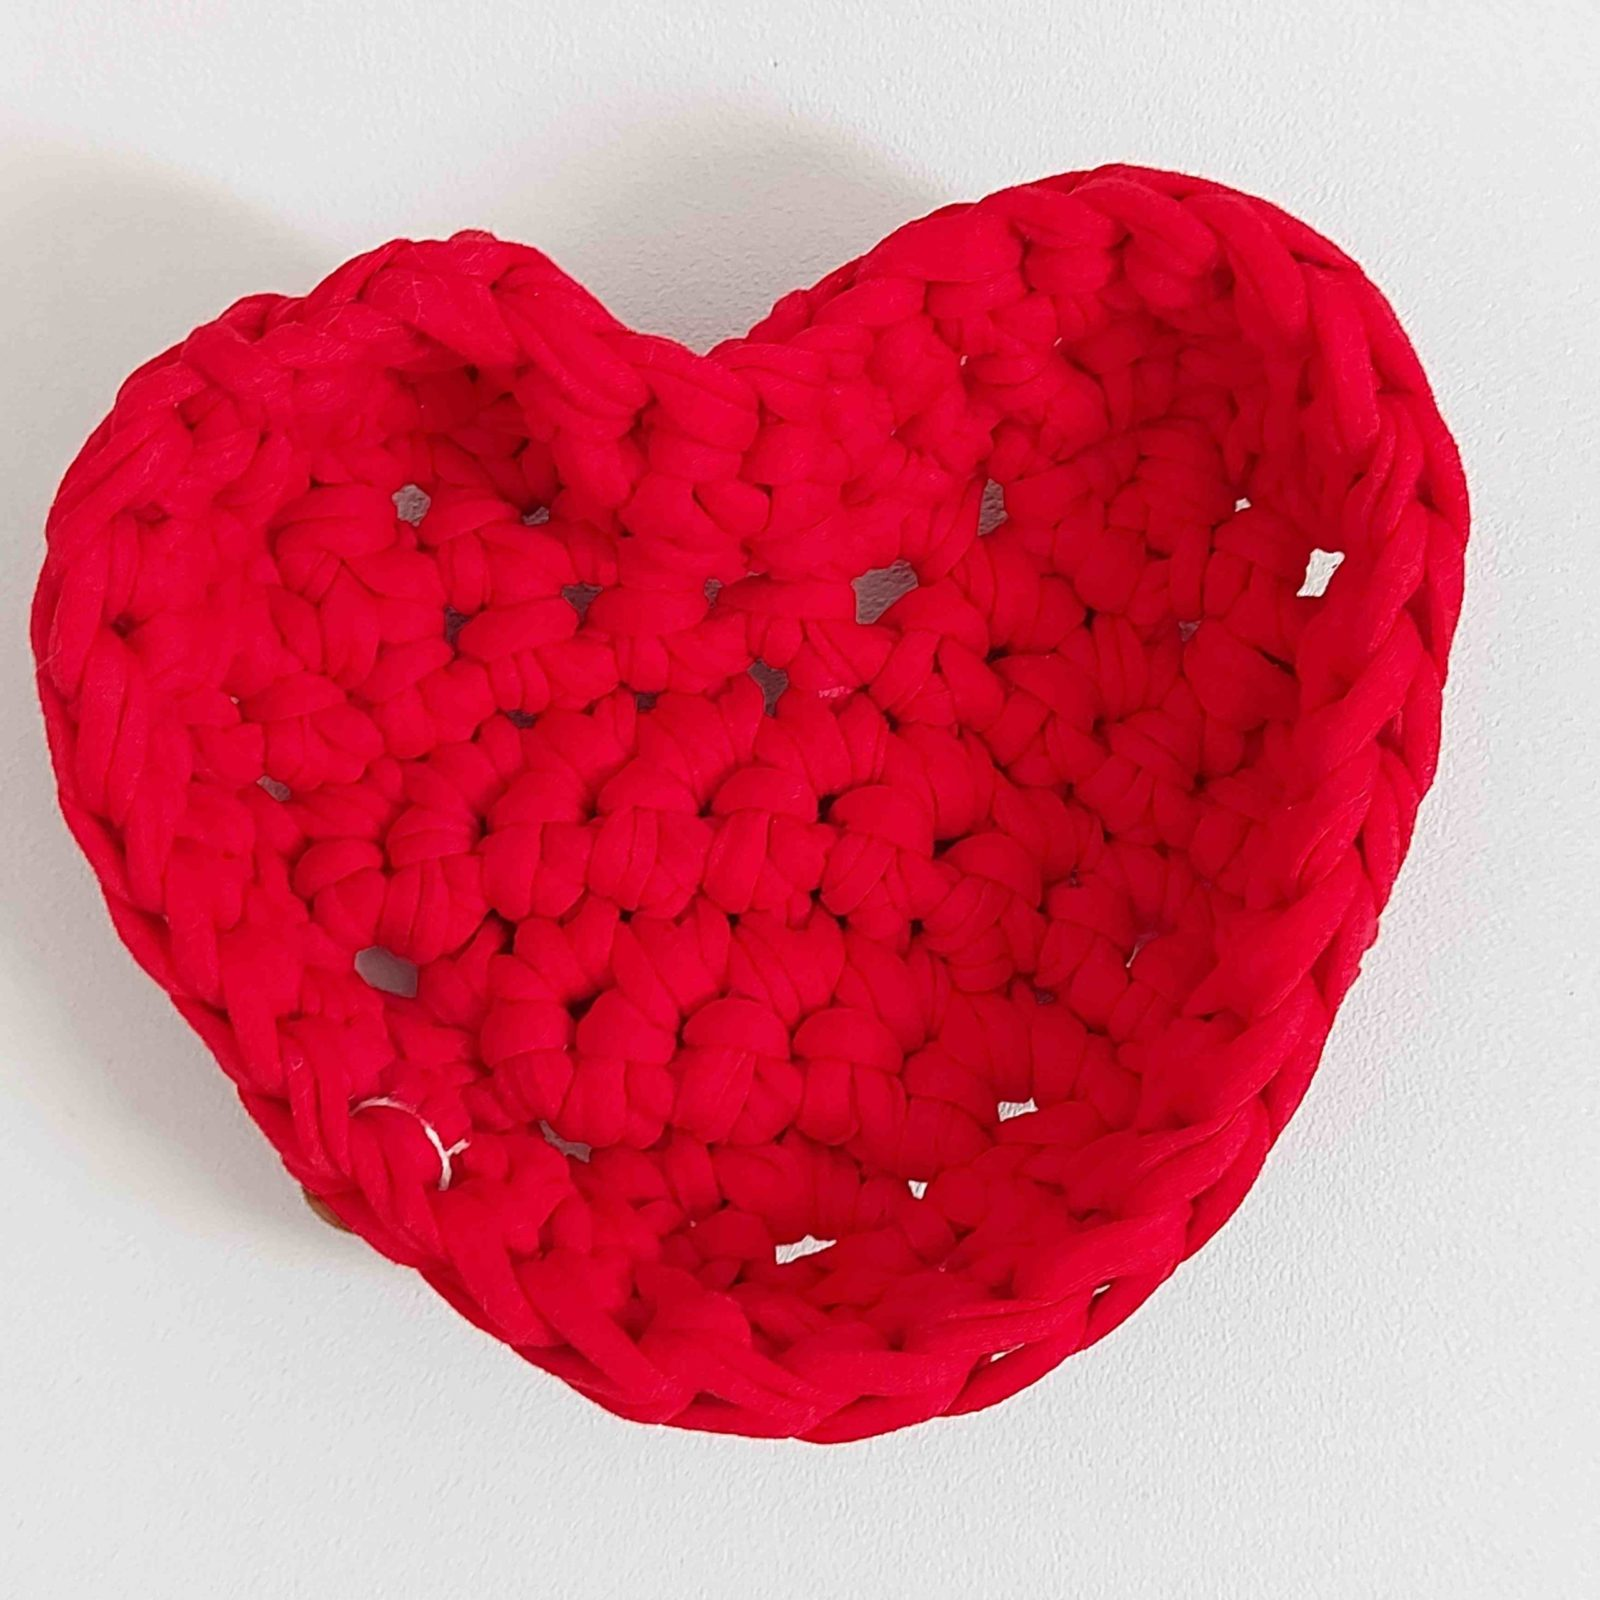 corbeille-coton-recycle-forme-coeur-couleur-rouge